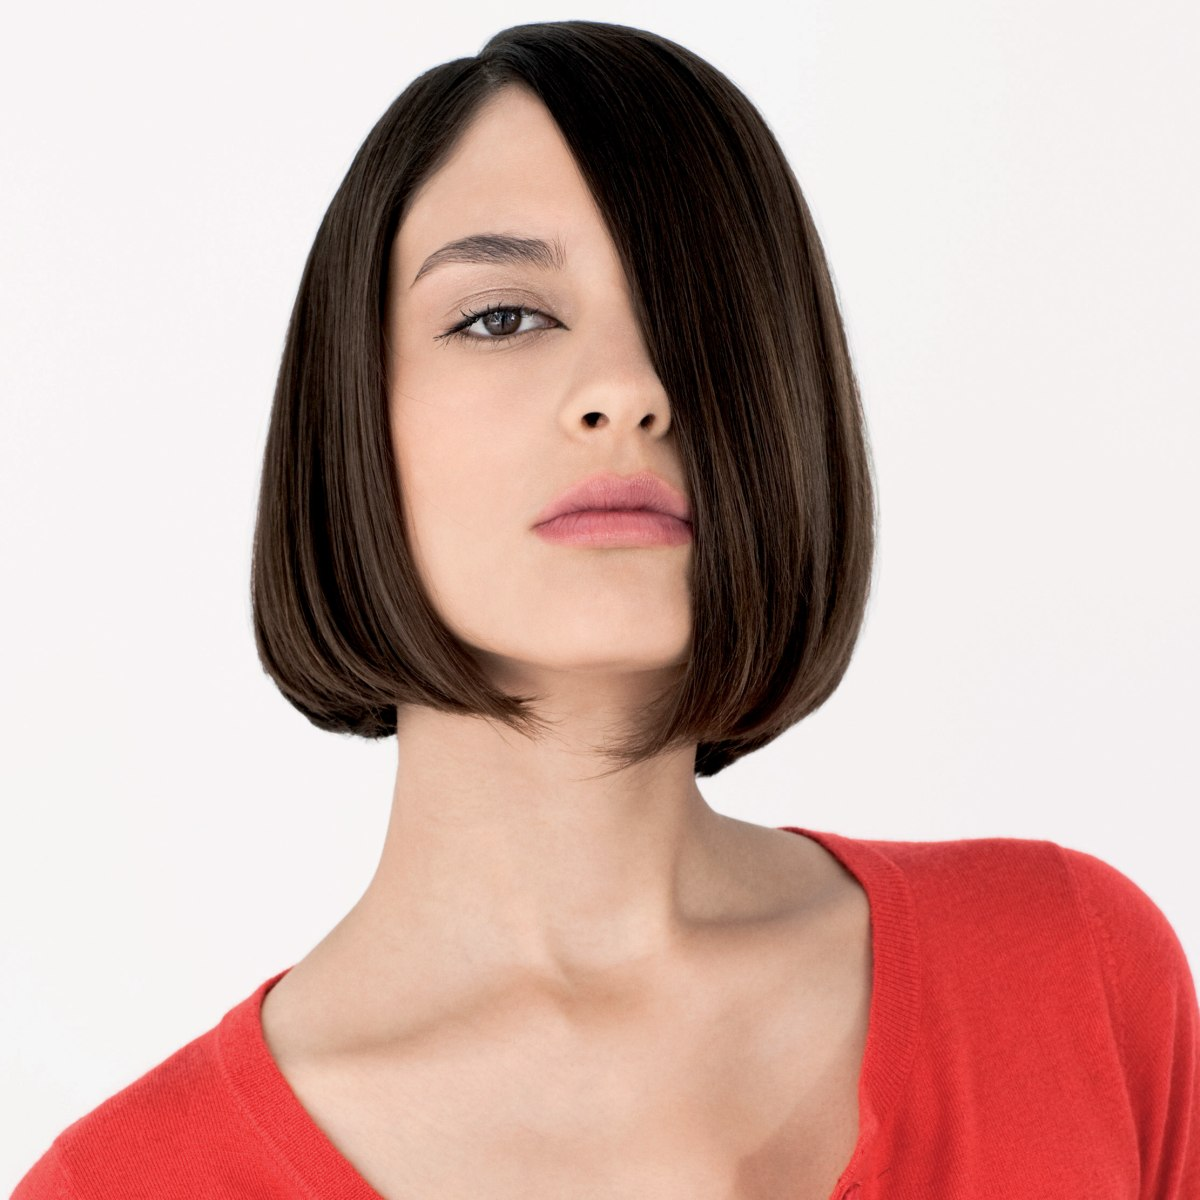 Stupendous Double Cut And Undercut Hairstyle And How To Define It Short Hairstyles For Black Women Fulllsitofus